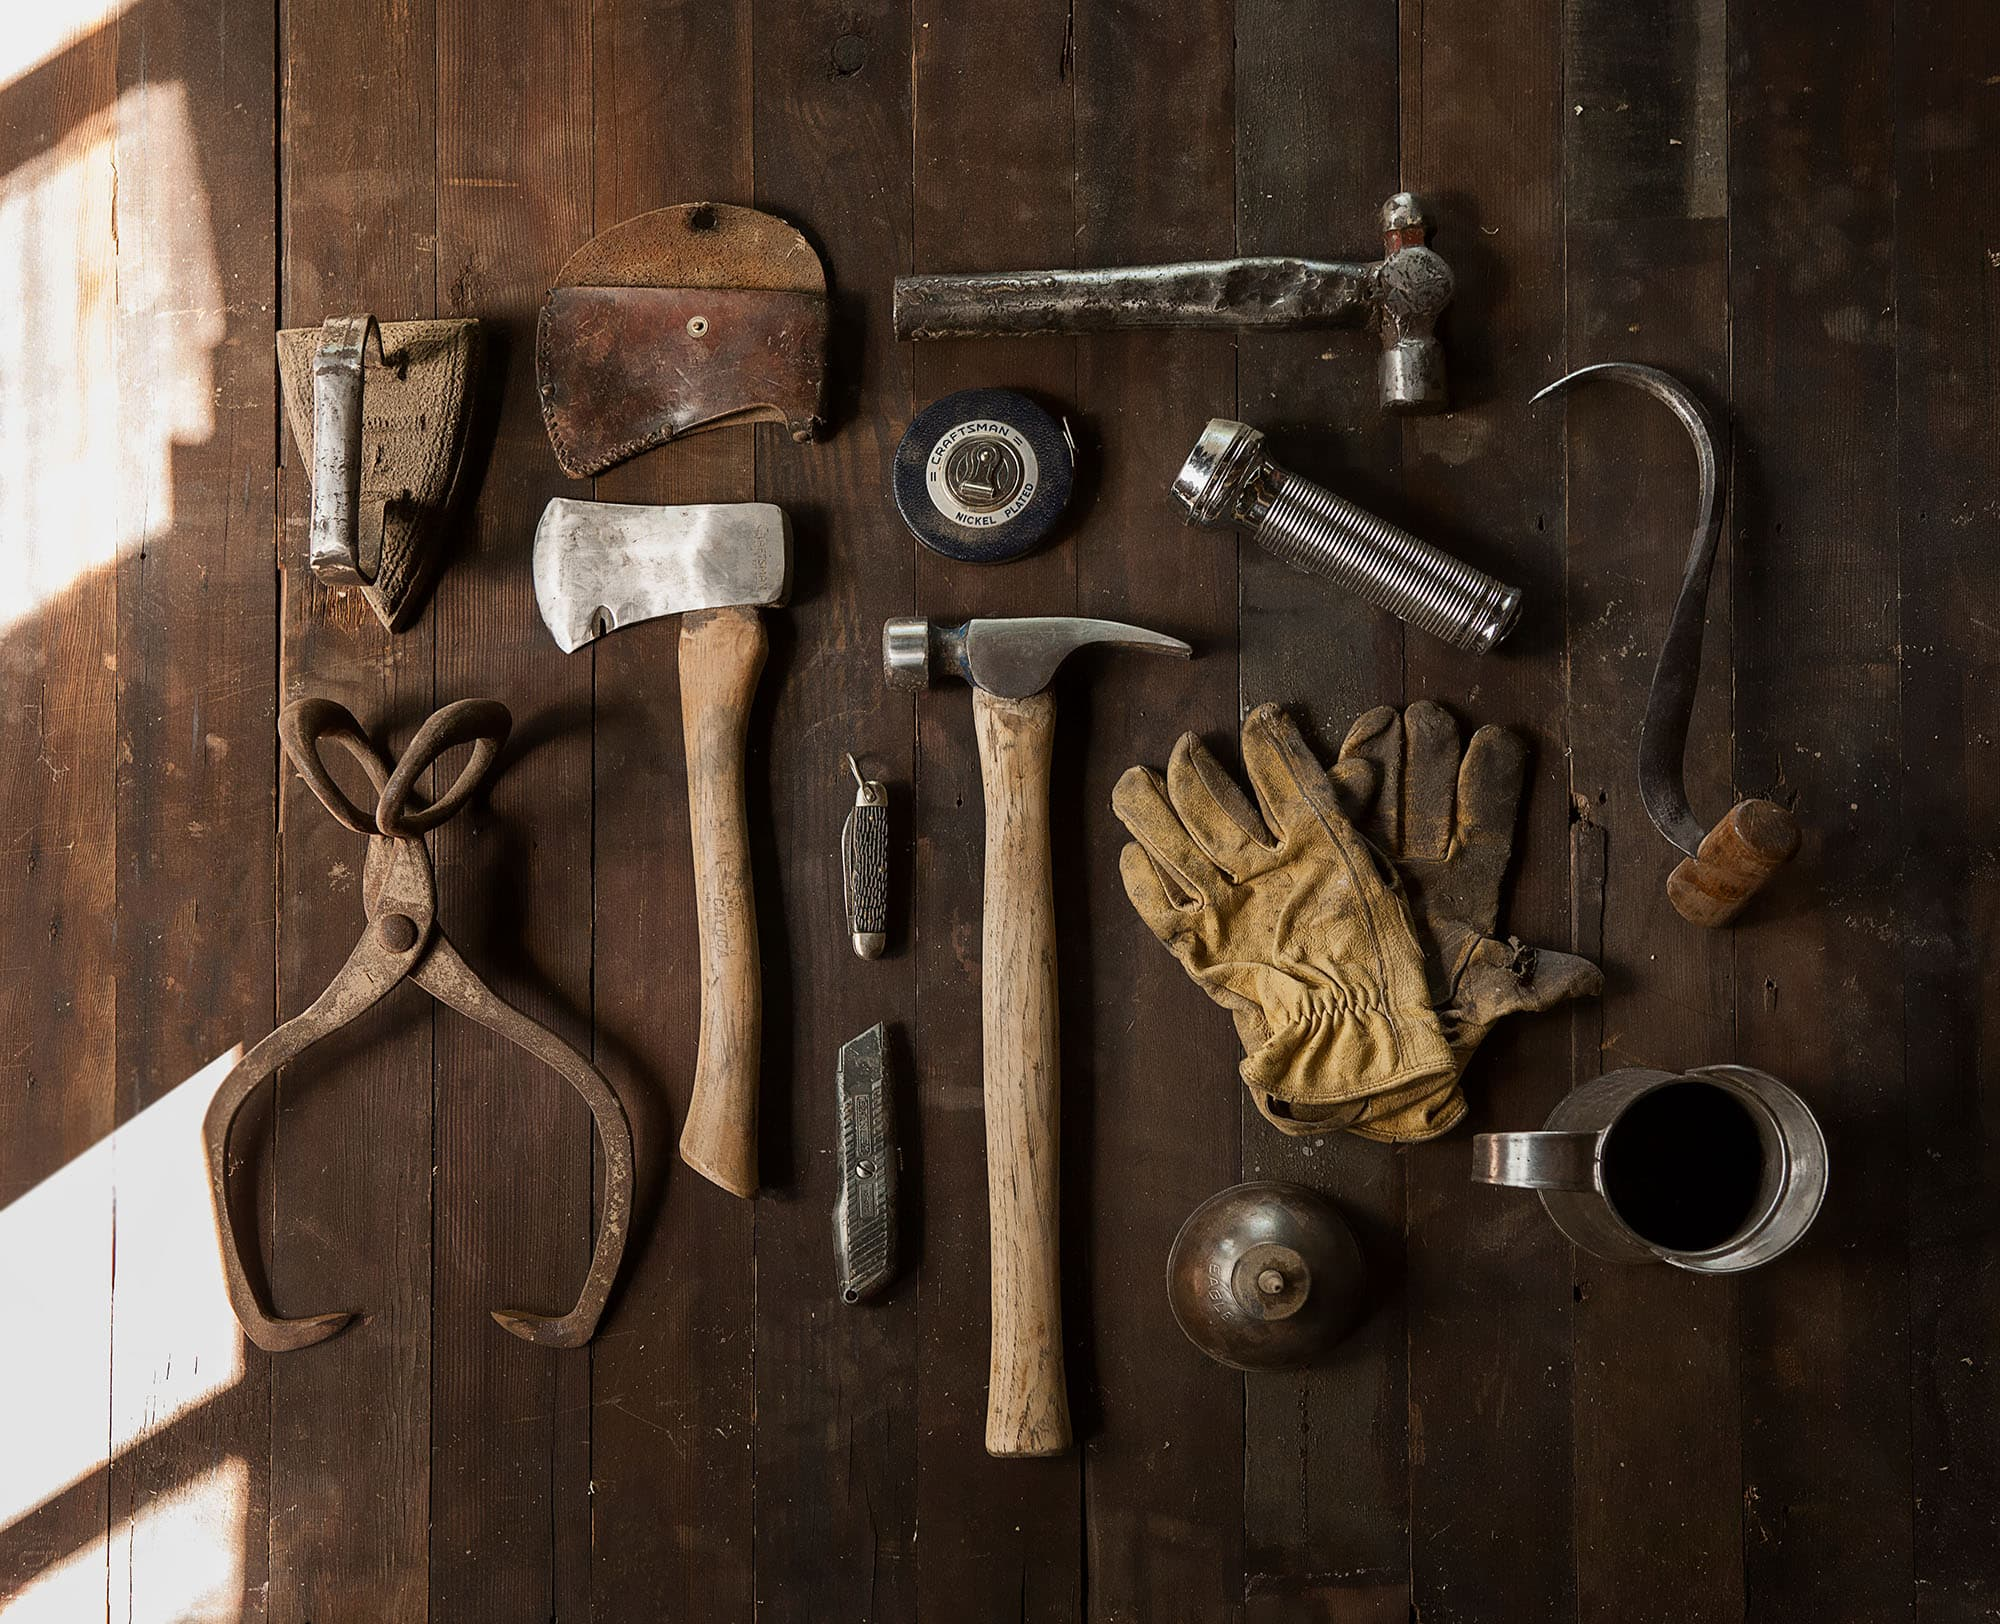 Tools laid out on floor